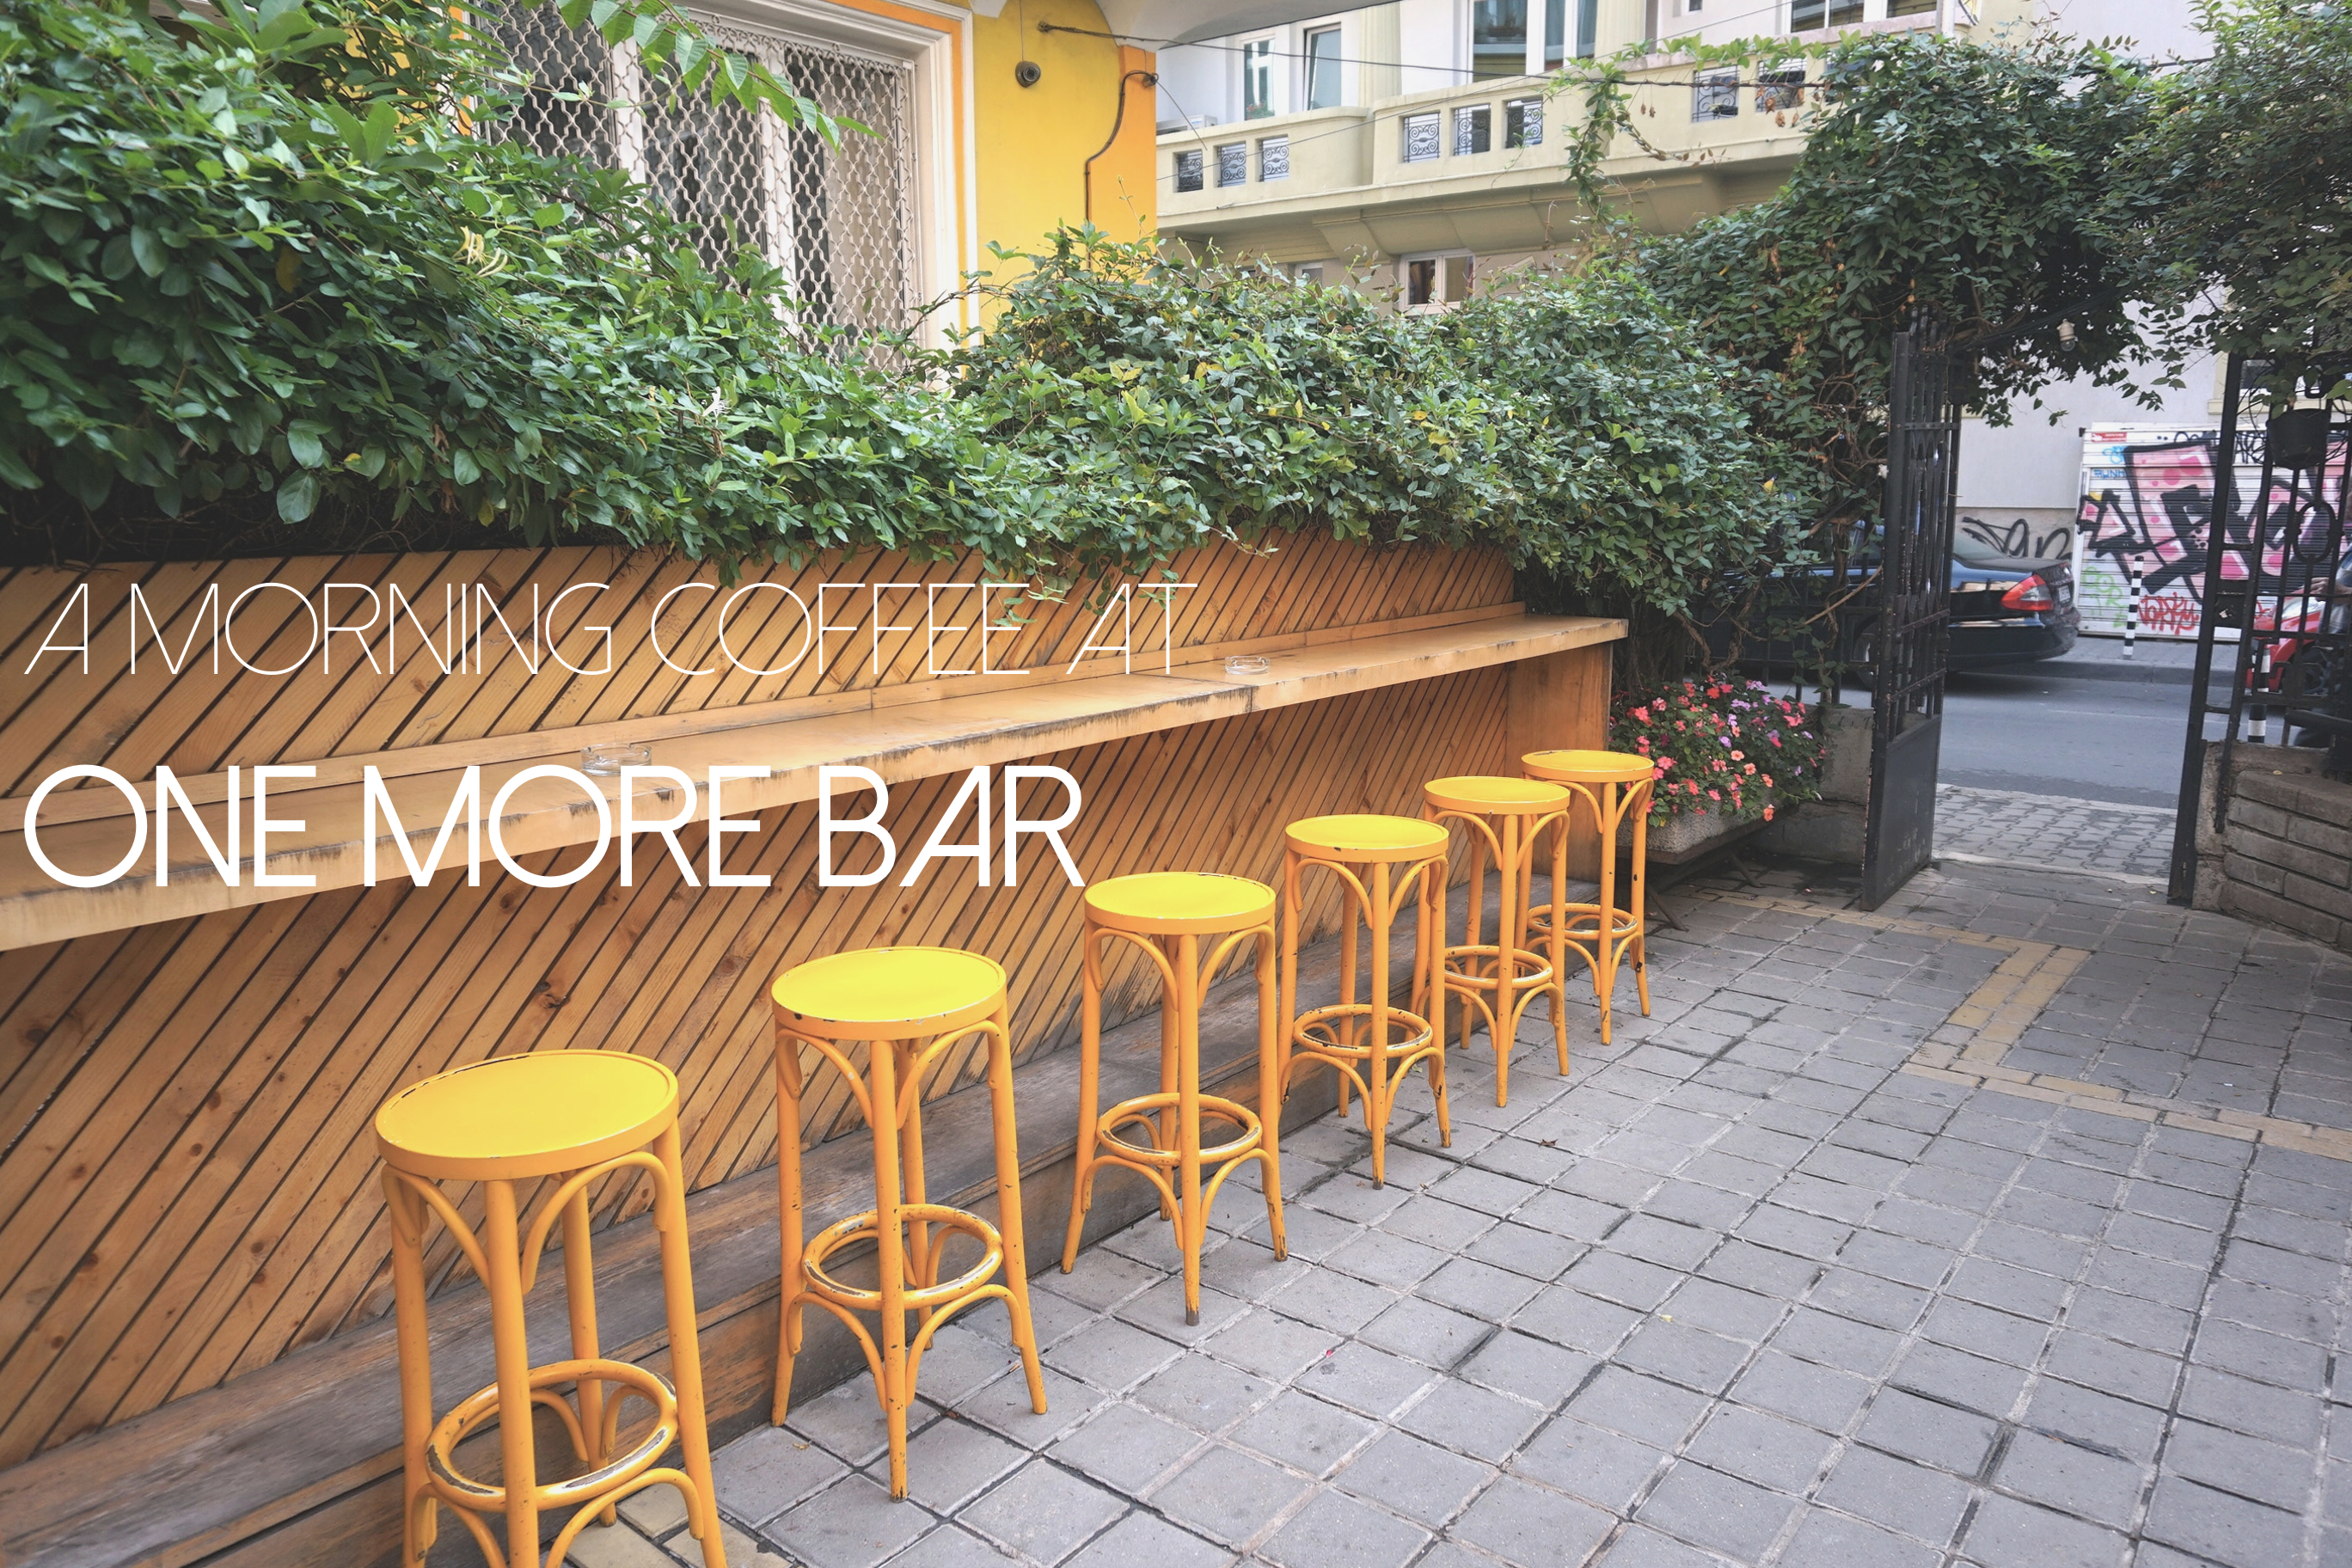 One More Bar